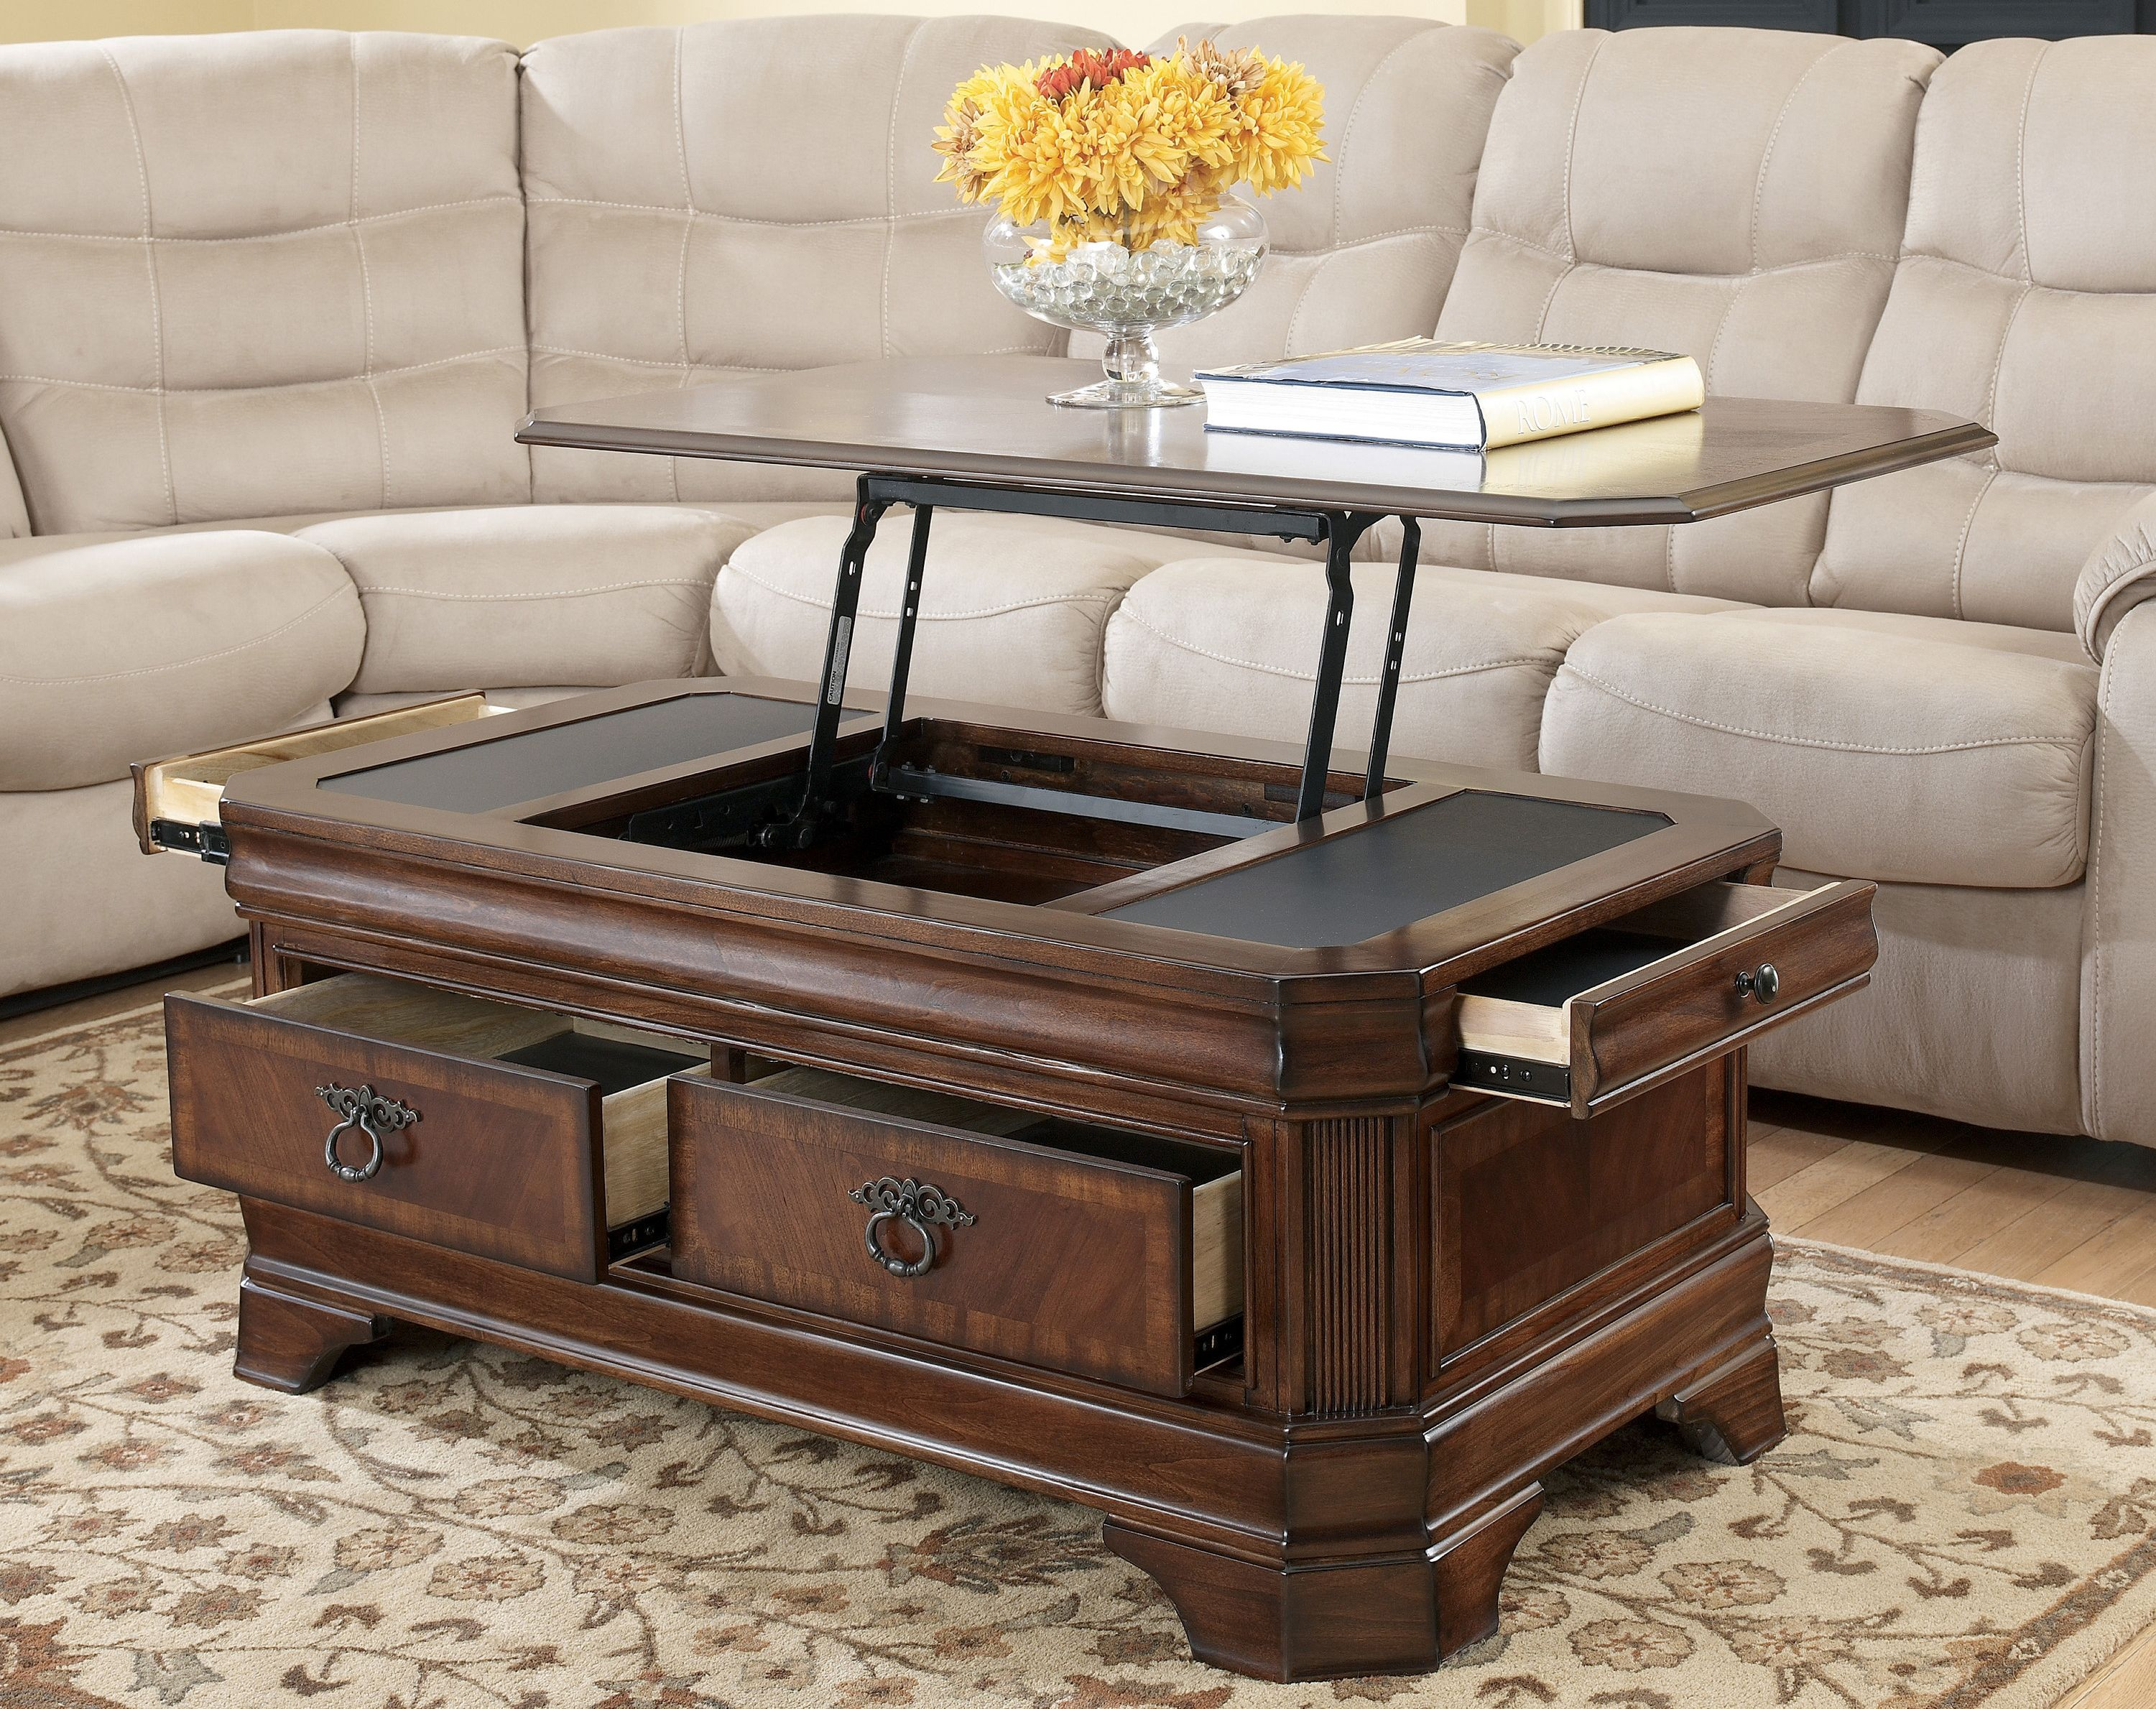 Lifttop coffee tables are usually stationary with the rare